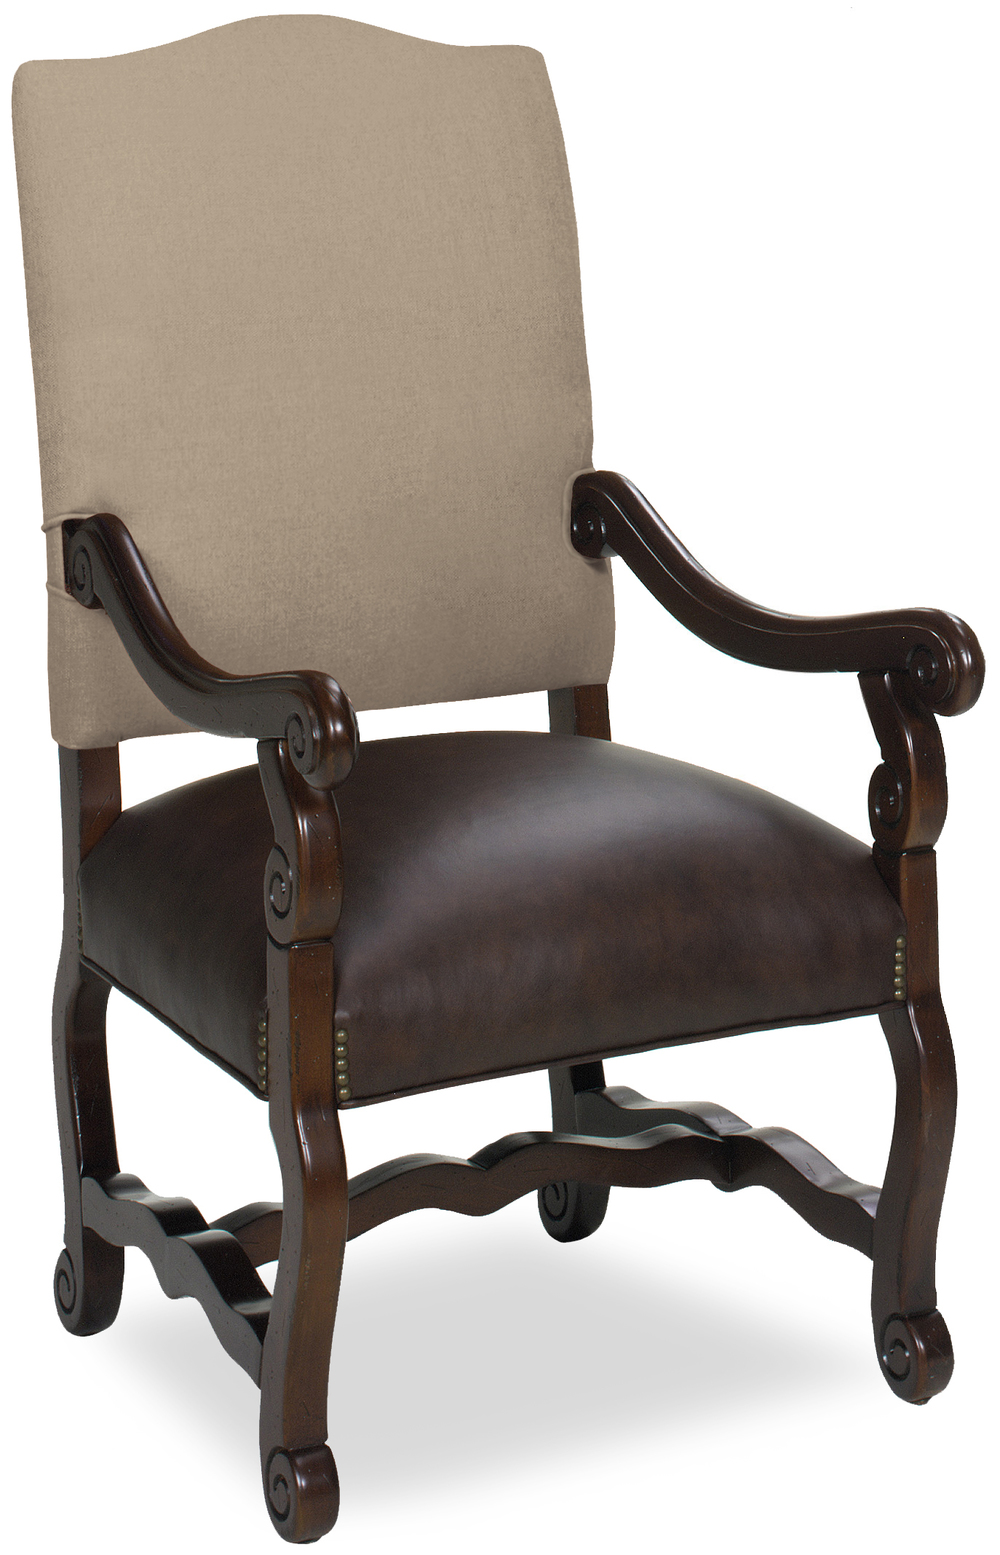 Parker Southern - Carlyle Chair